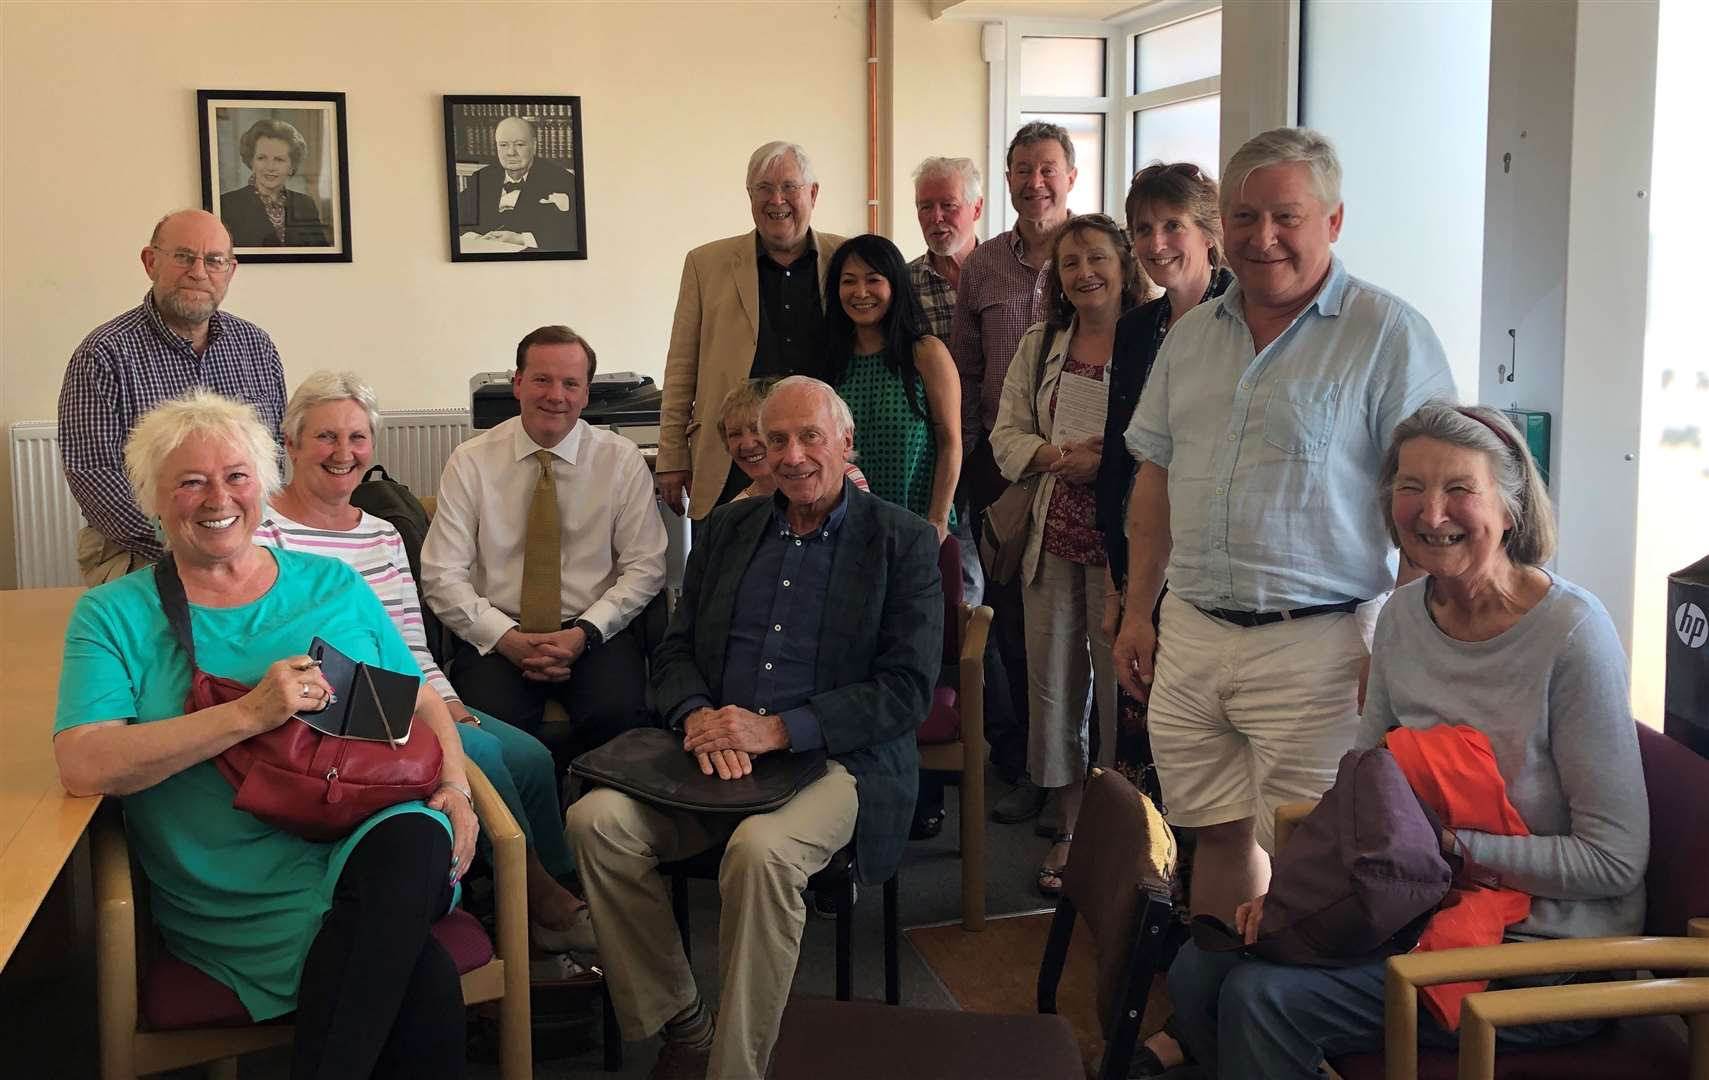 MP Charlie Elphicke met with members of Finglesham Fields campaign group who are hosting the meeting